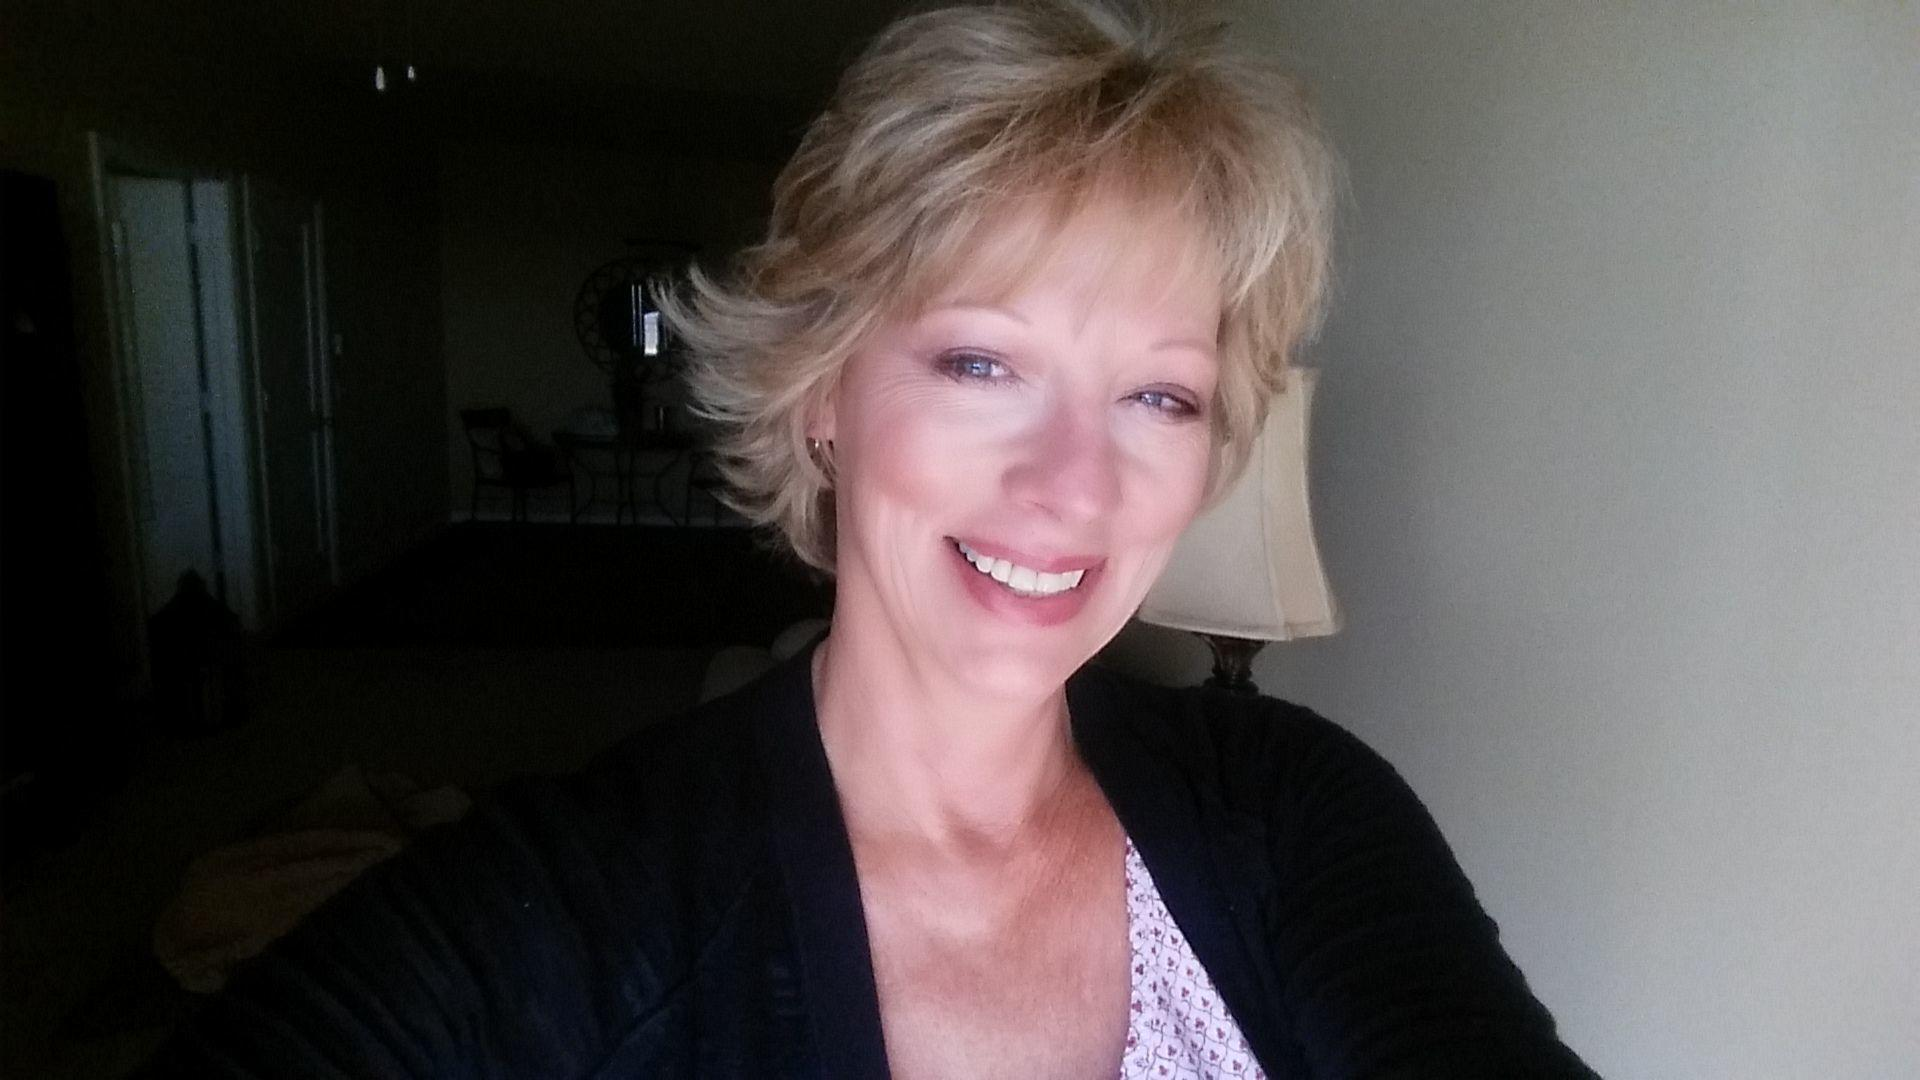 meet bentonville singles Online dating brings singles together who may never otherwise meet it's a big   whether you are seeking just a date, a pen pal, a casual or a serious relationship , you can meet singles in bella vista today arkansas is  singles in bentonville.